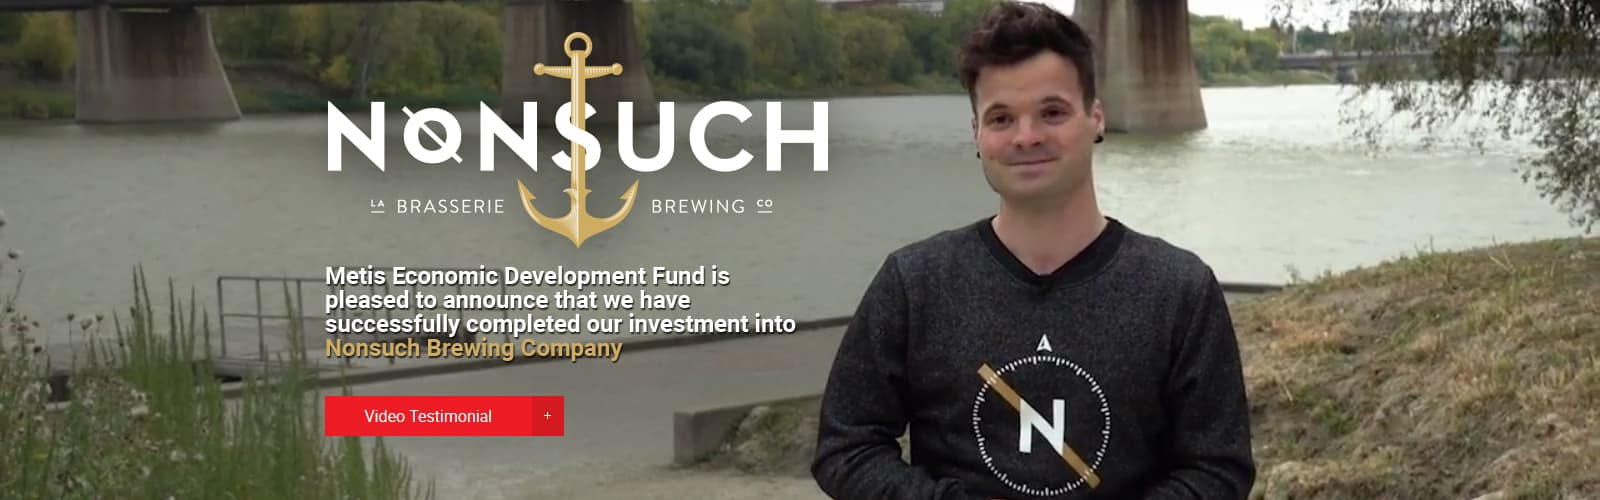 Nonsuch Brewing Company Investment